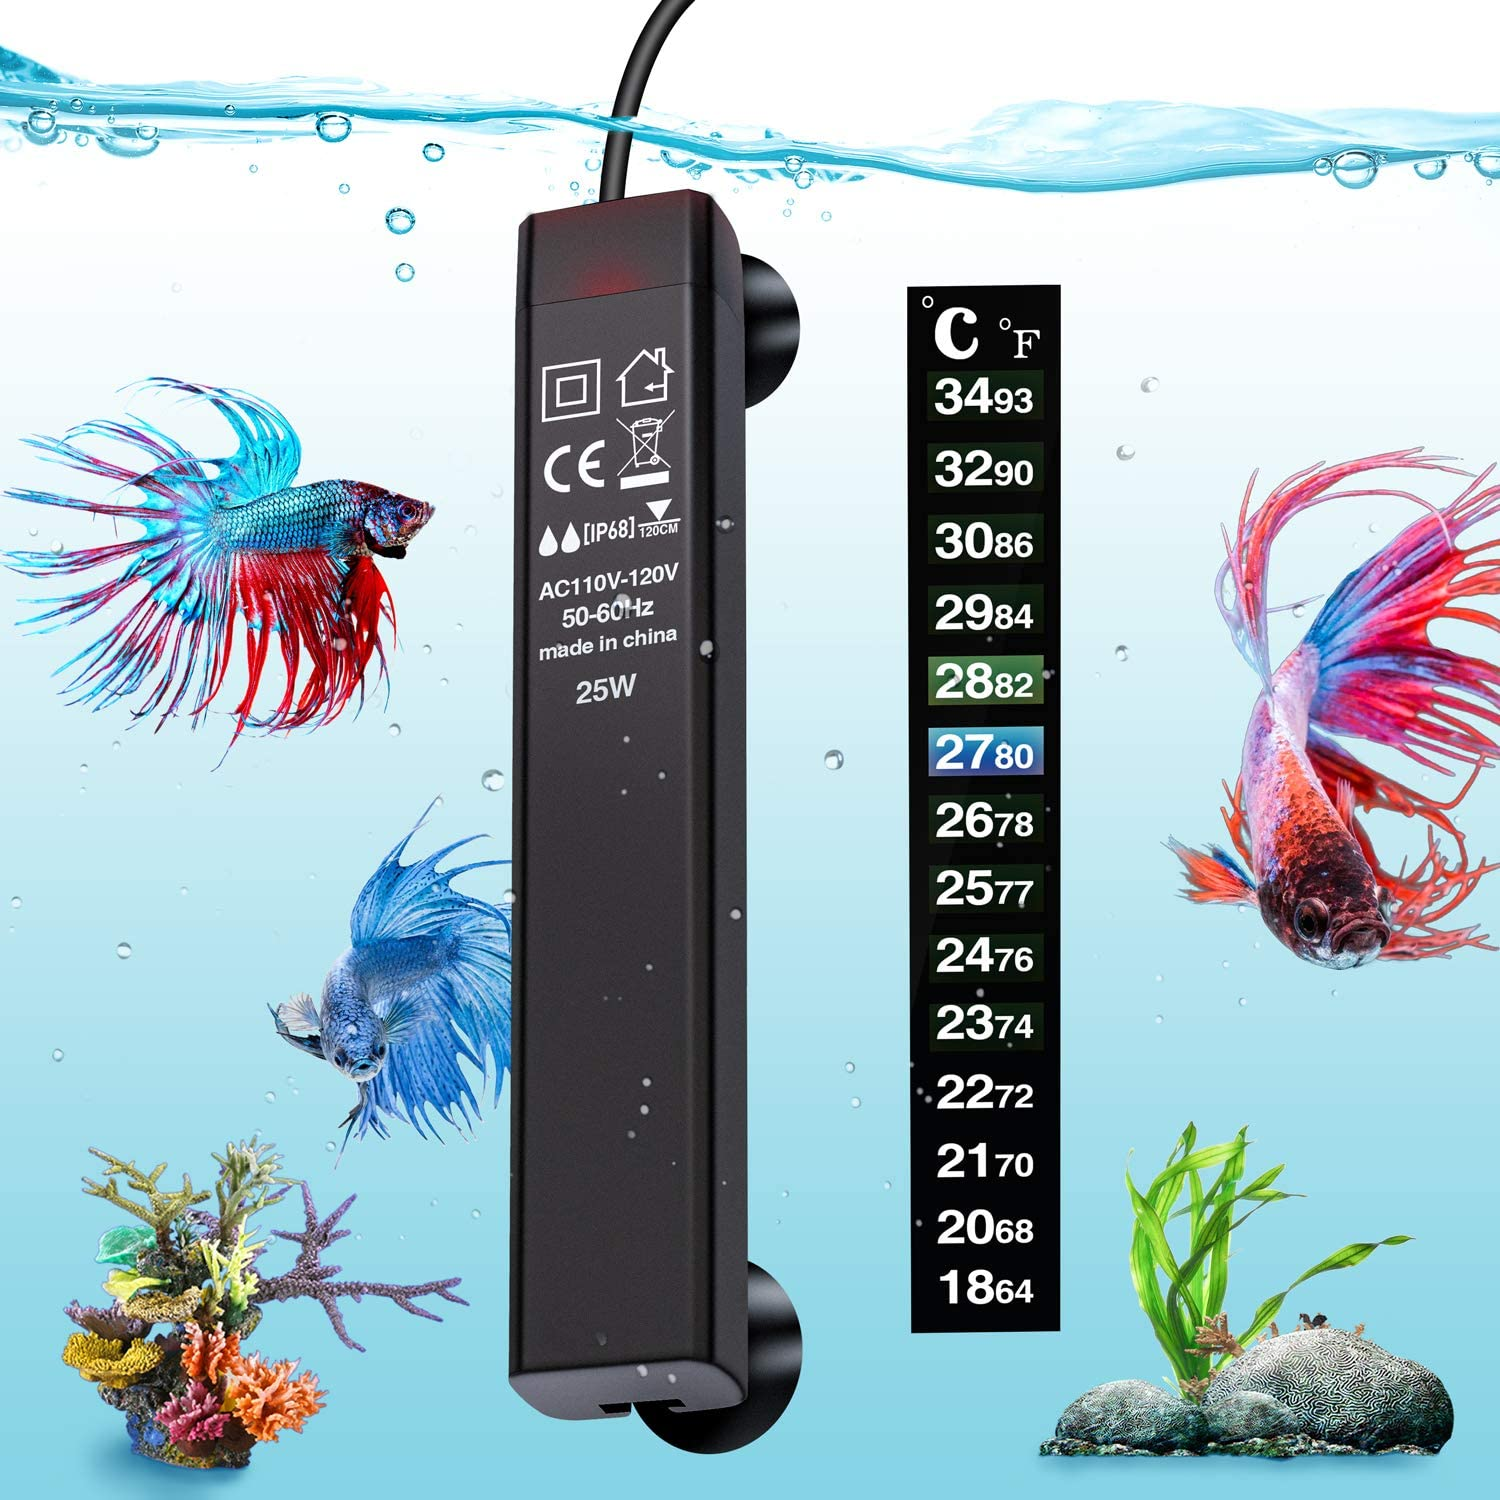 Viberit Aquarium Heater | Best for Fast Heating